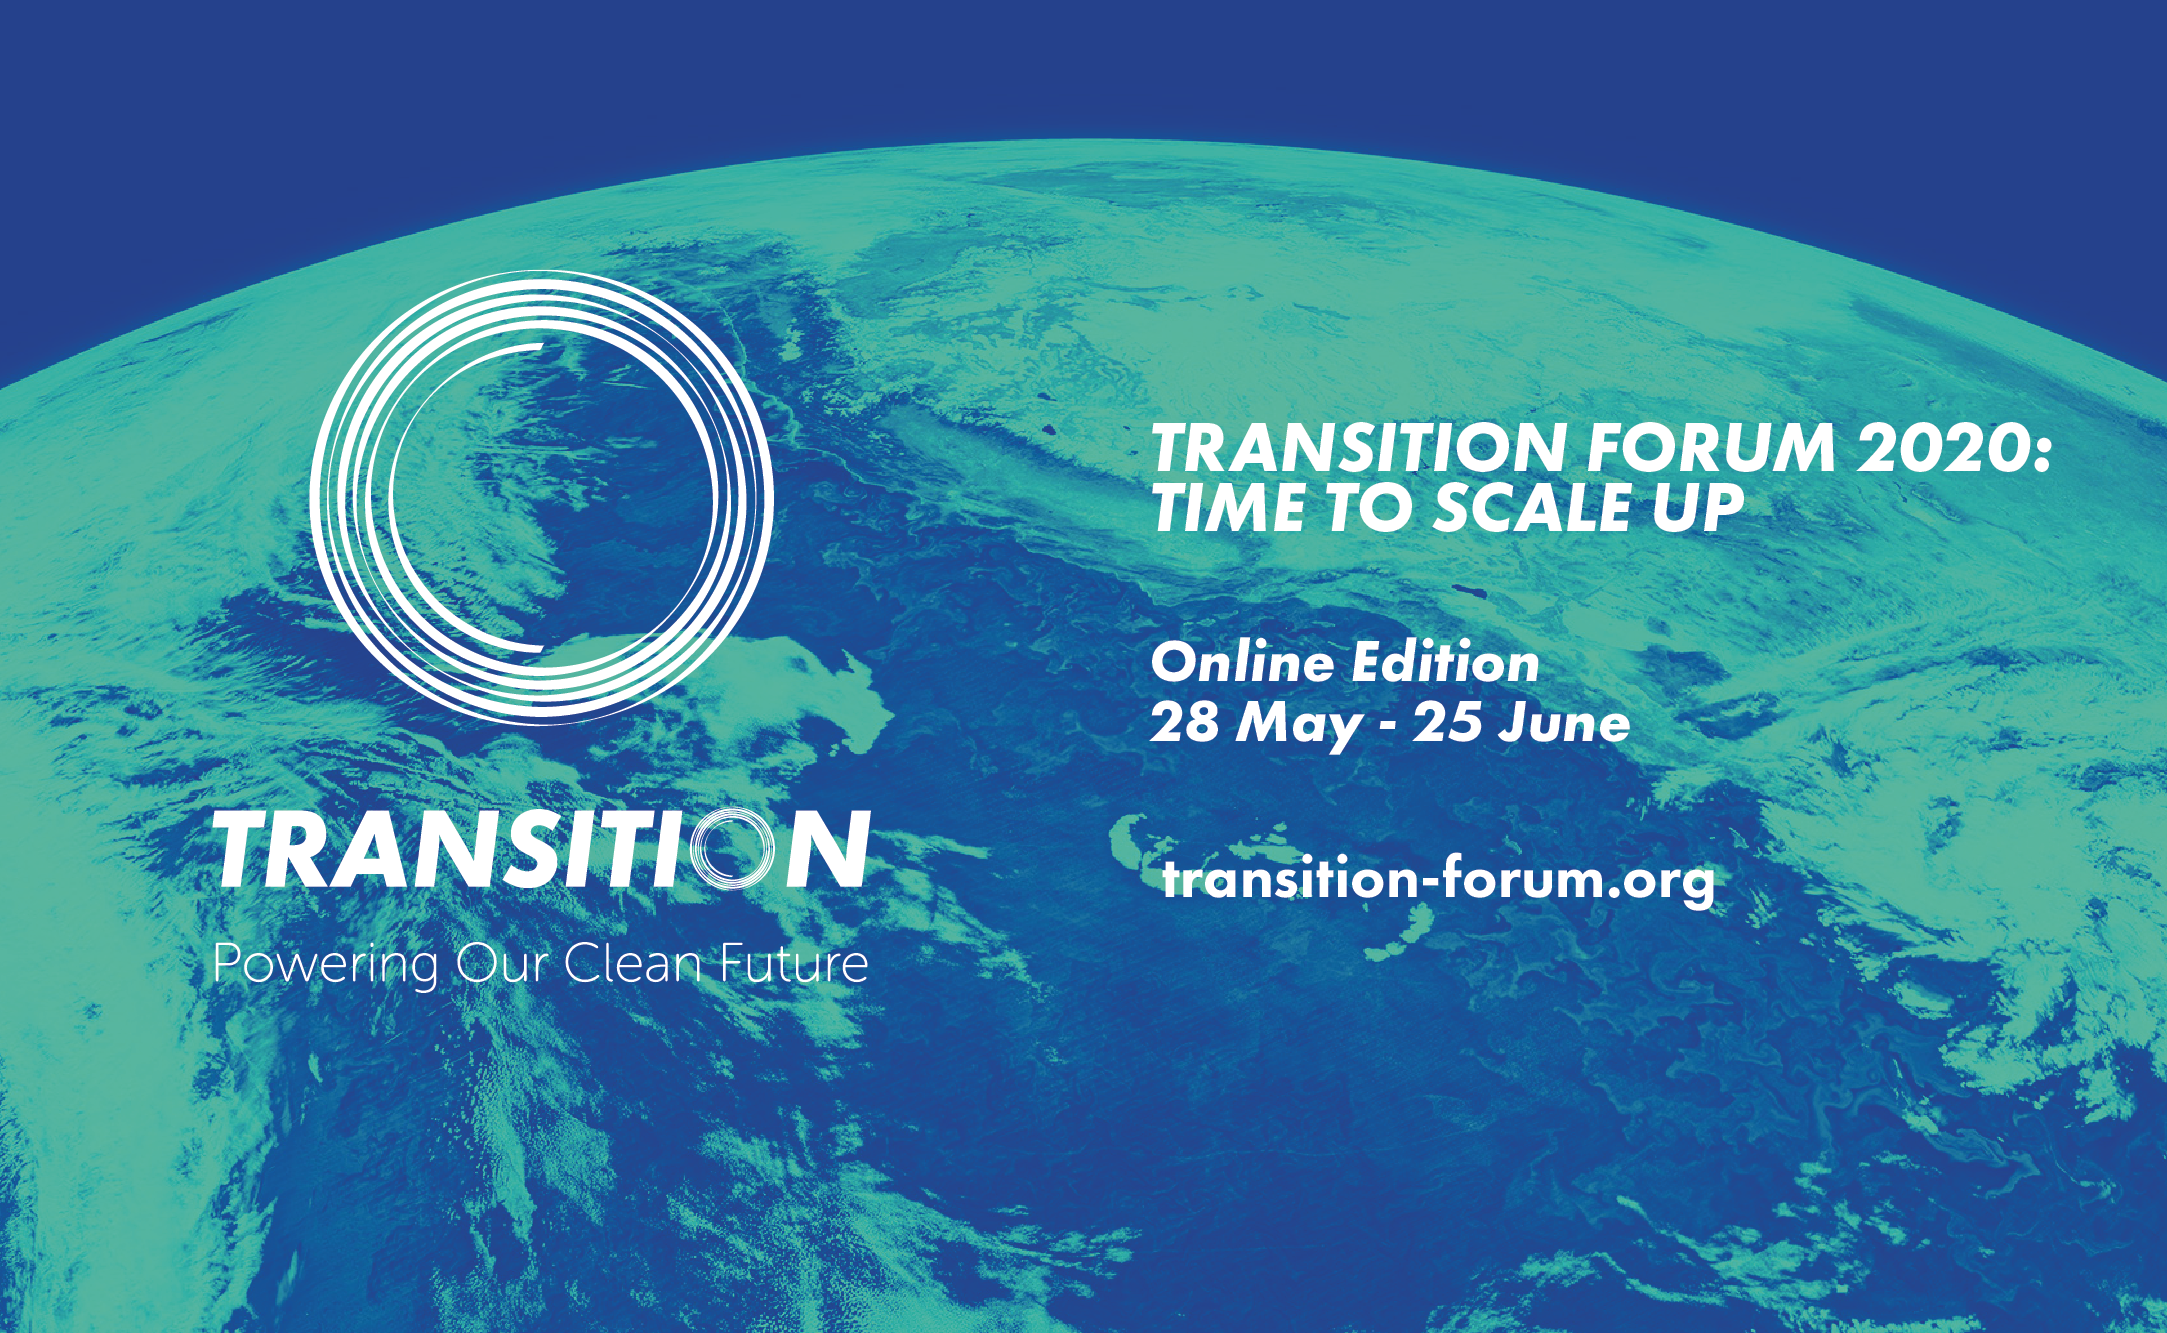 Ready to join climate innovators ONLINE on 28 May?